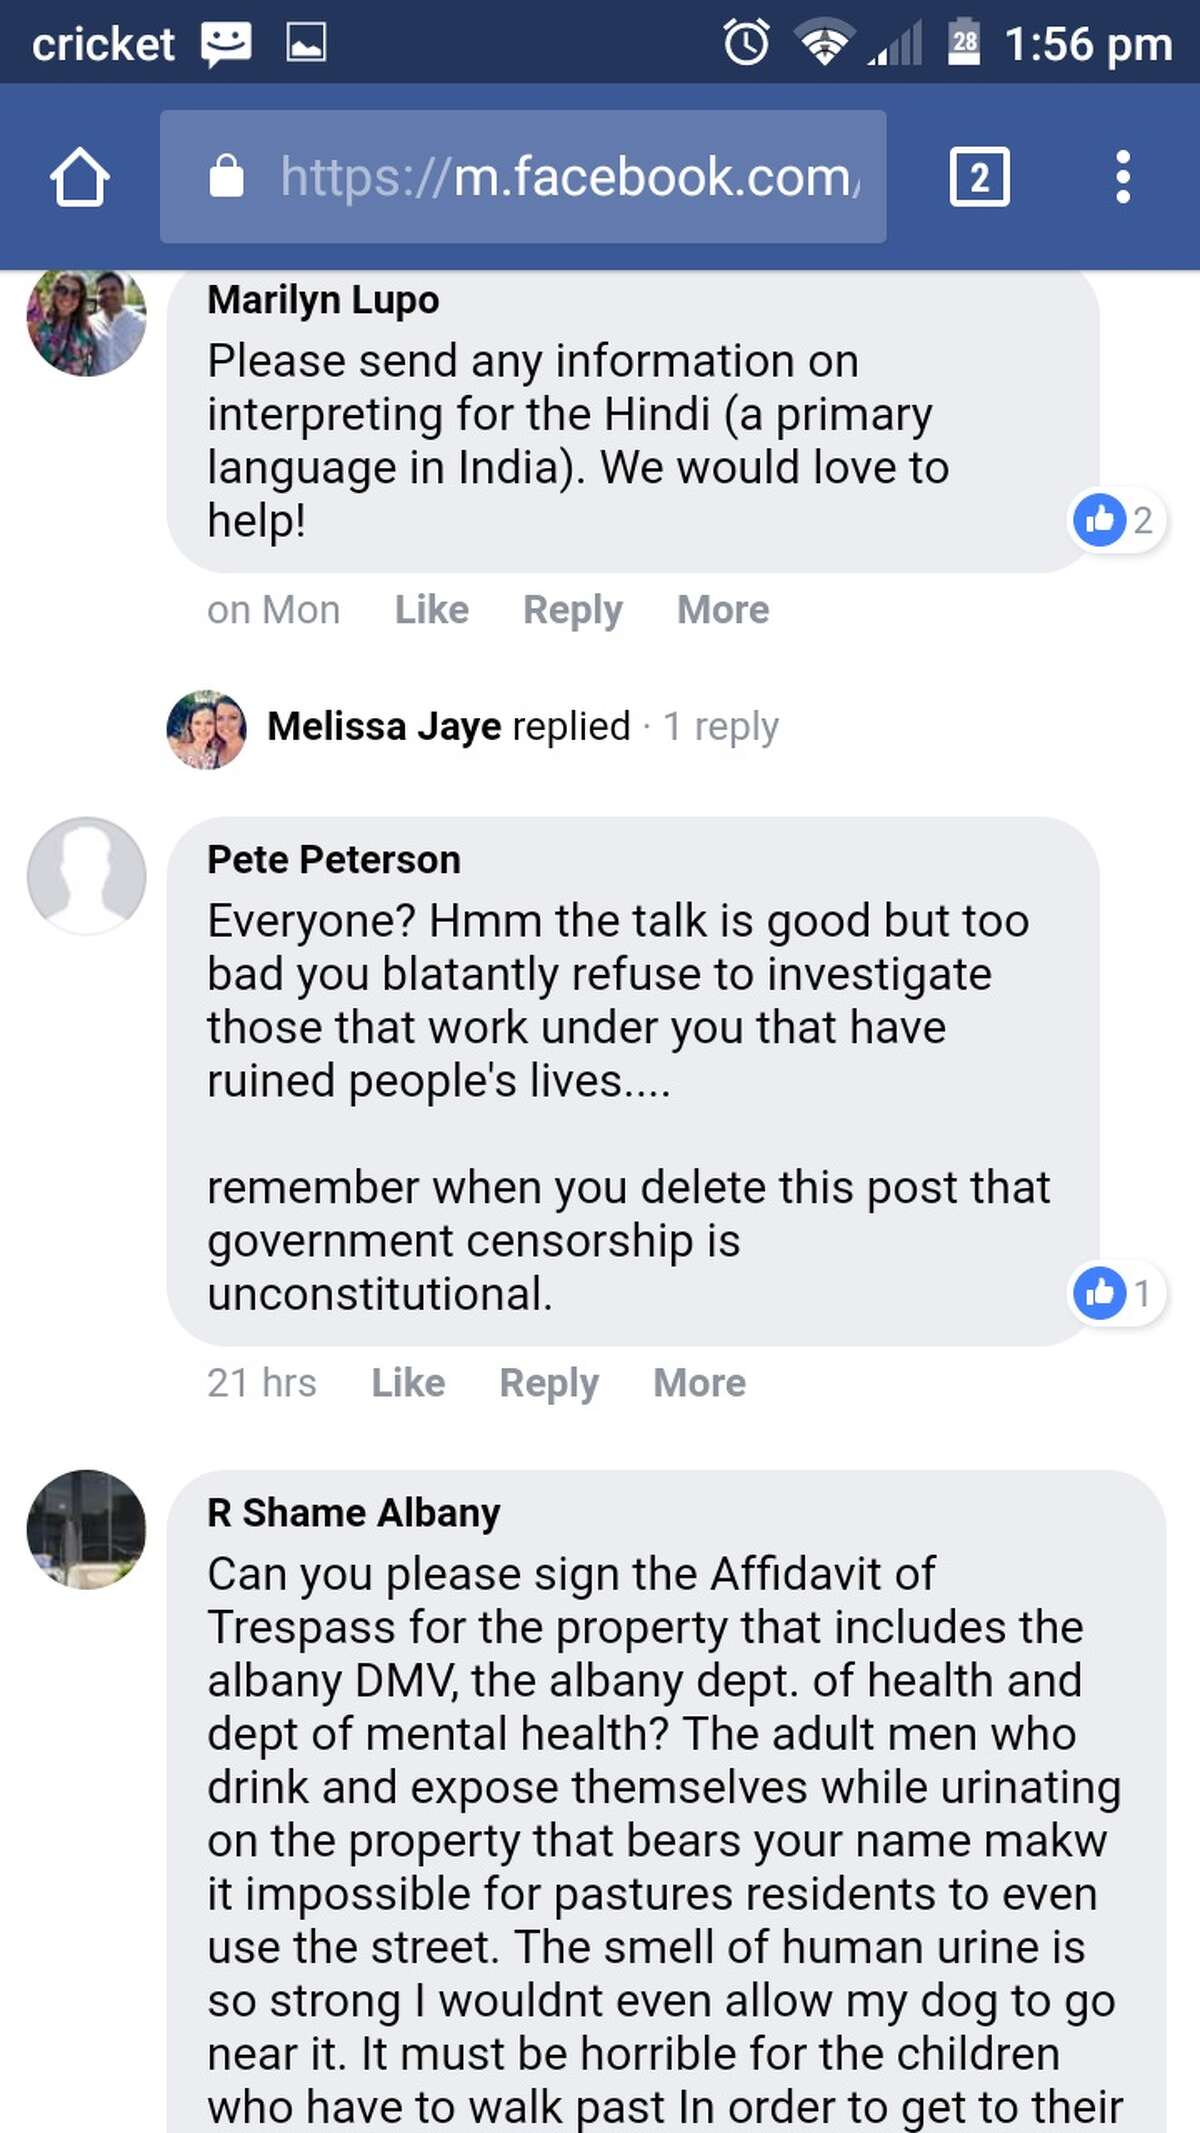 A screenshot provided by Albany city resident Shaun Kelly, who says his free speech rights were violated when Albany County deleted his comment posting as